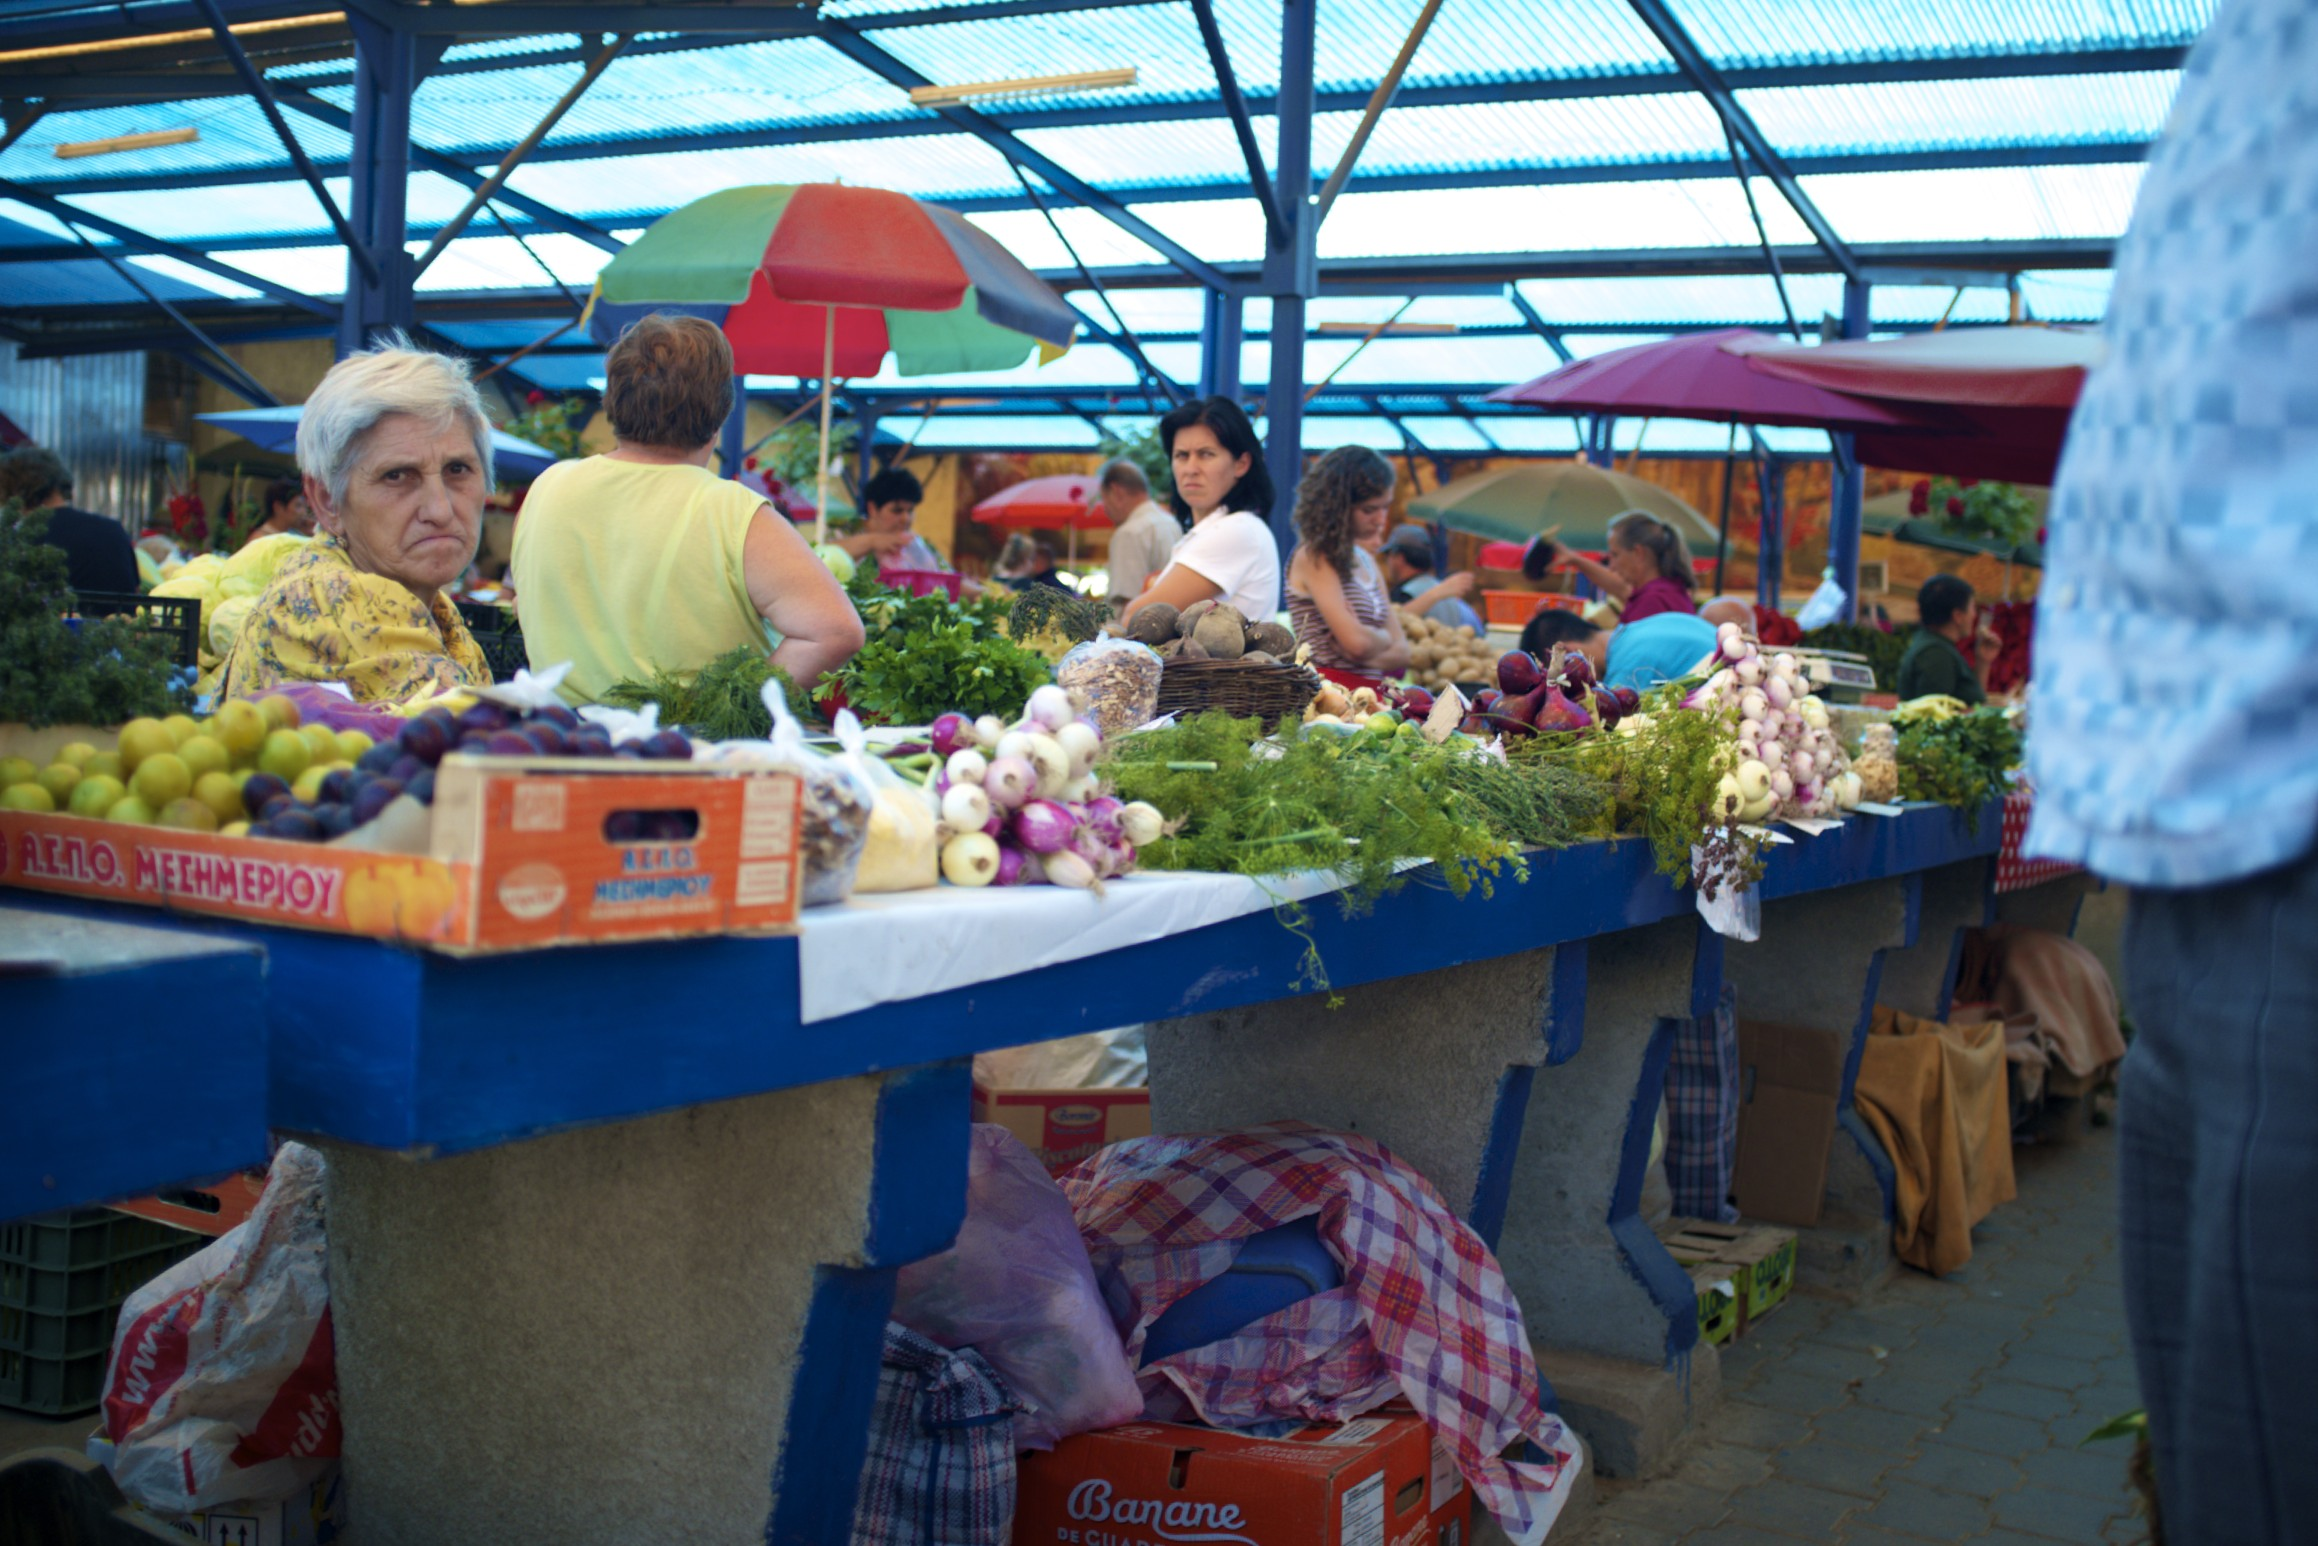 # a day at the market